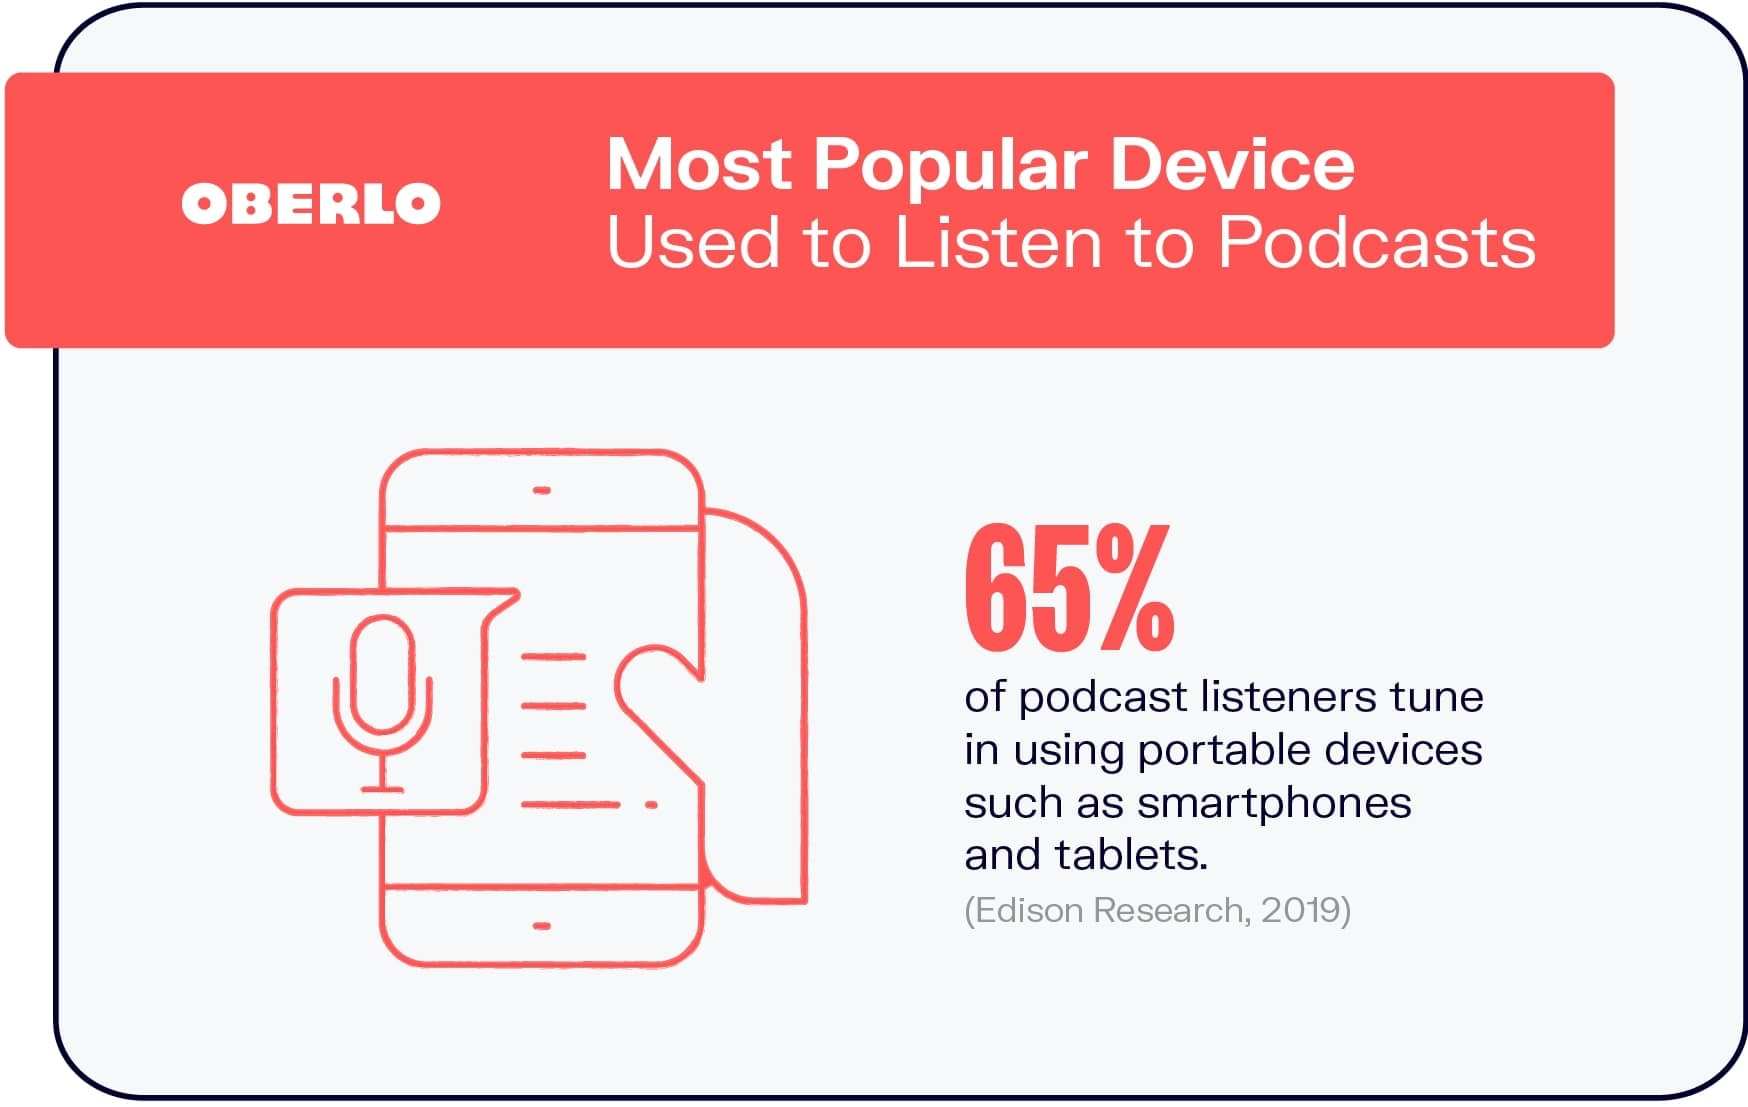 Most Popular Device Used to Listen to Podcasts